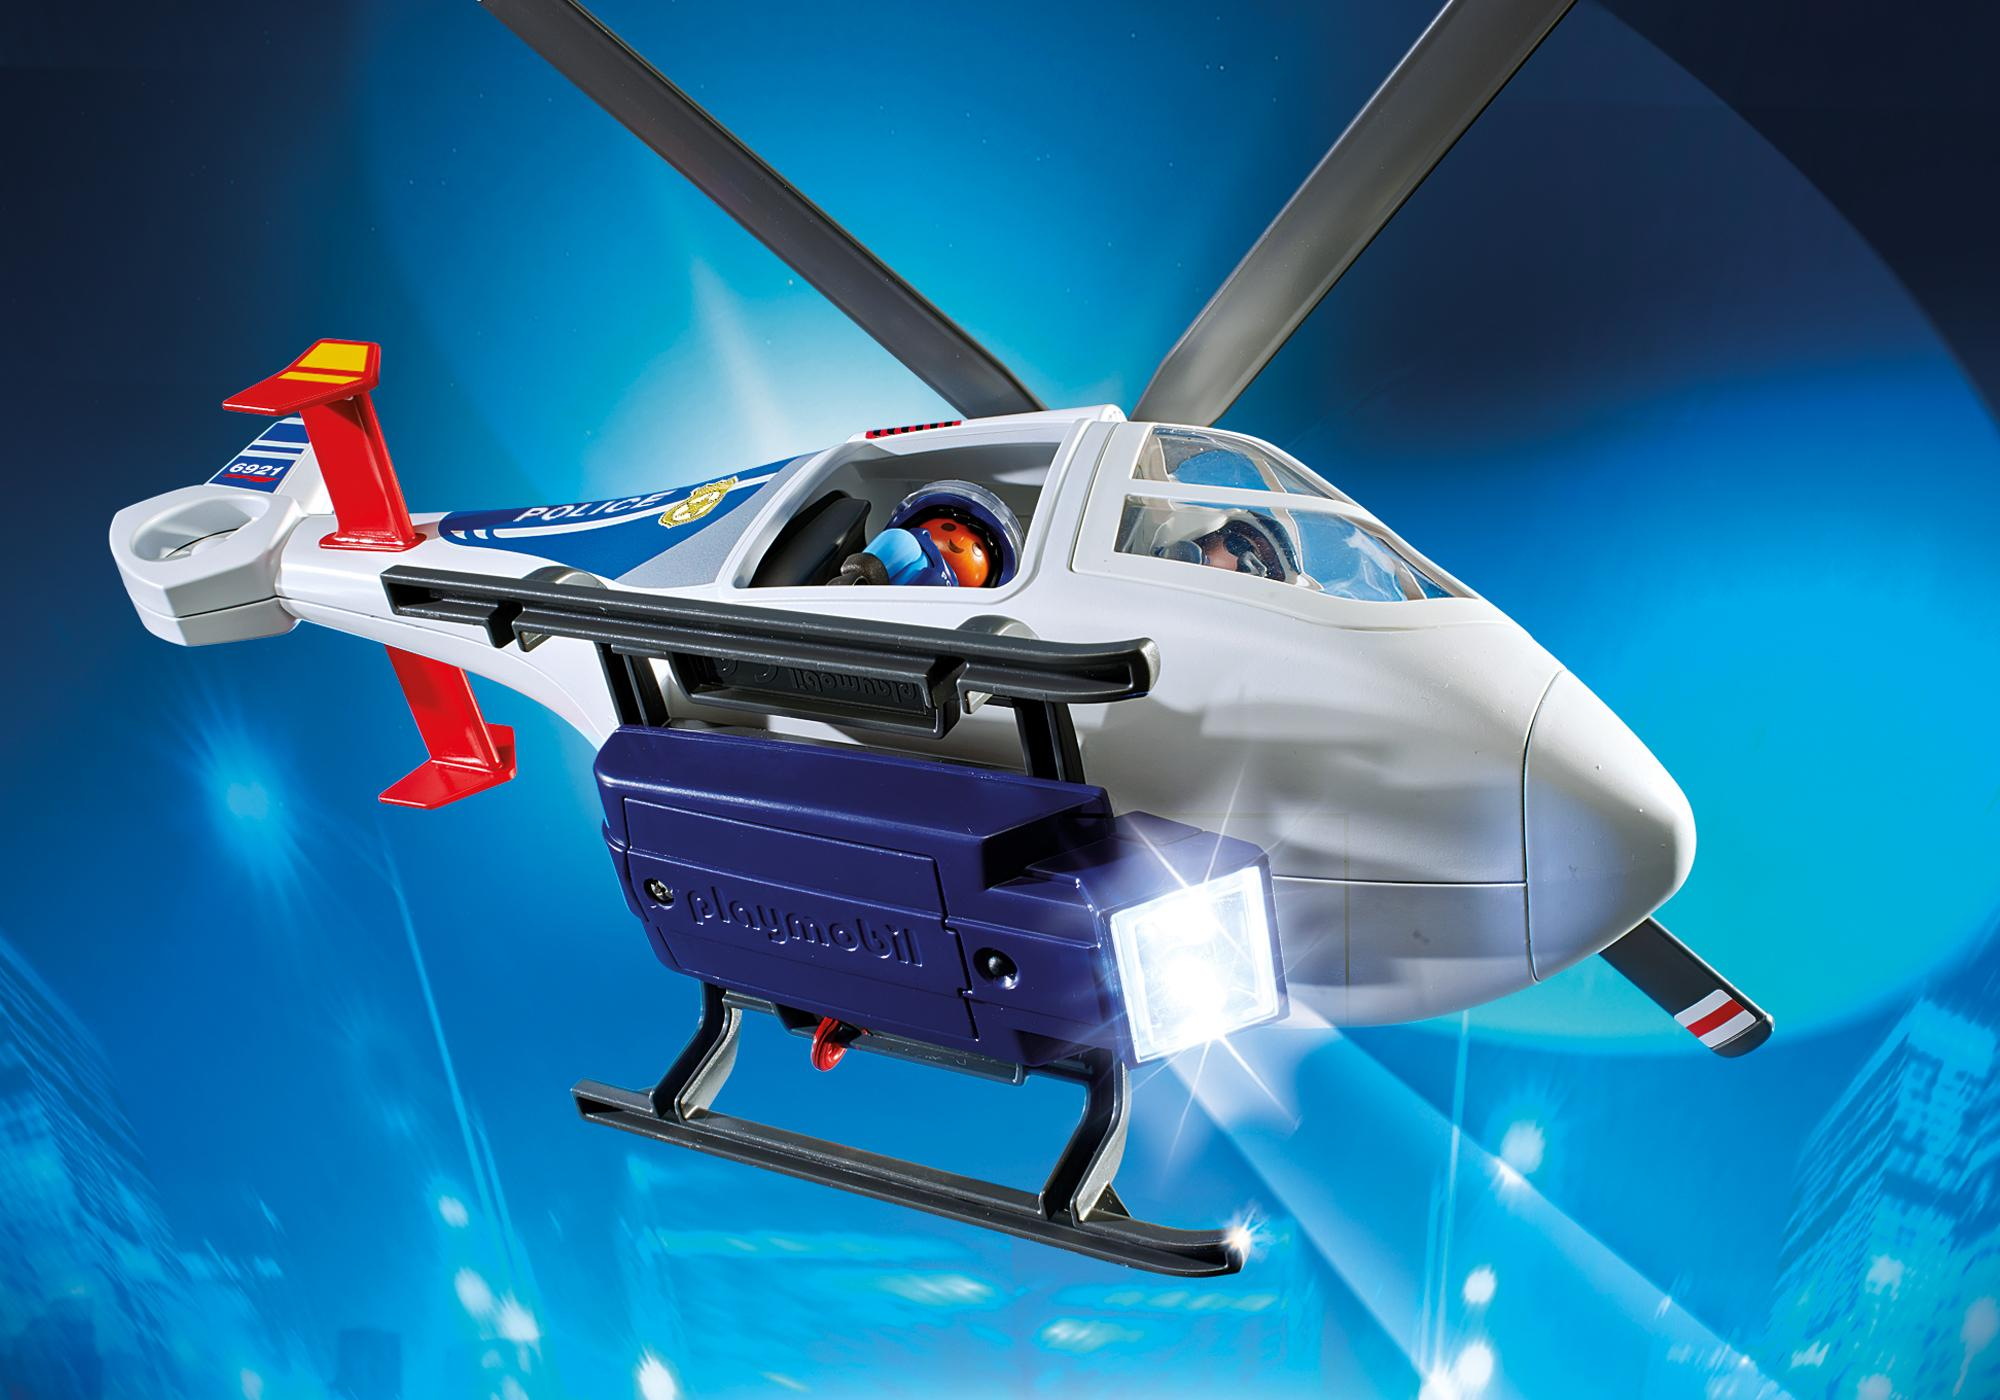 http://media.playmobil.com/i/playmobil/6921_product_extra3/Int. Polizei-Helikopter mit LED-Suchscheinwerfer